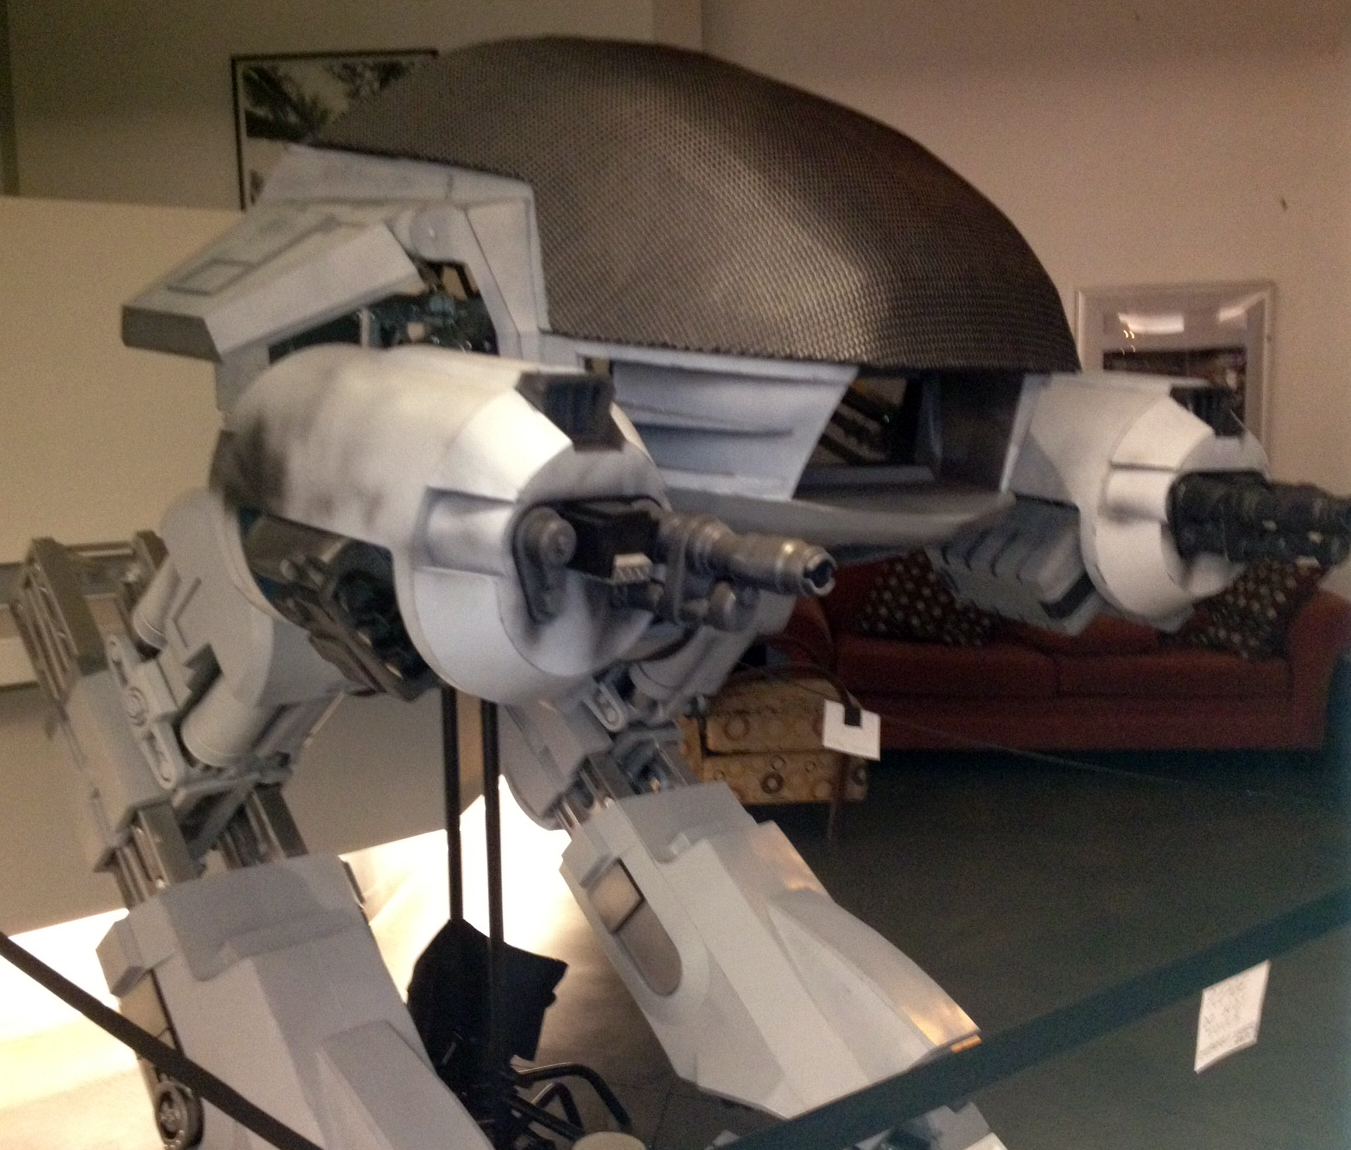 """The ED-209 recreation used in one scene of """"Our Robocop Remake"""" was on display at the Downtown Independent Theater in Los Angeles, which is also host to the monthly Channel 101 screenings."""